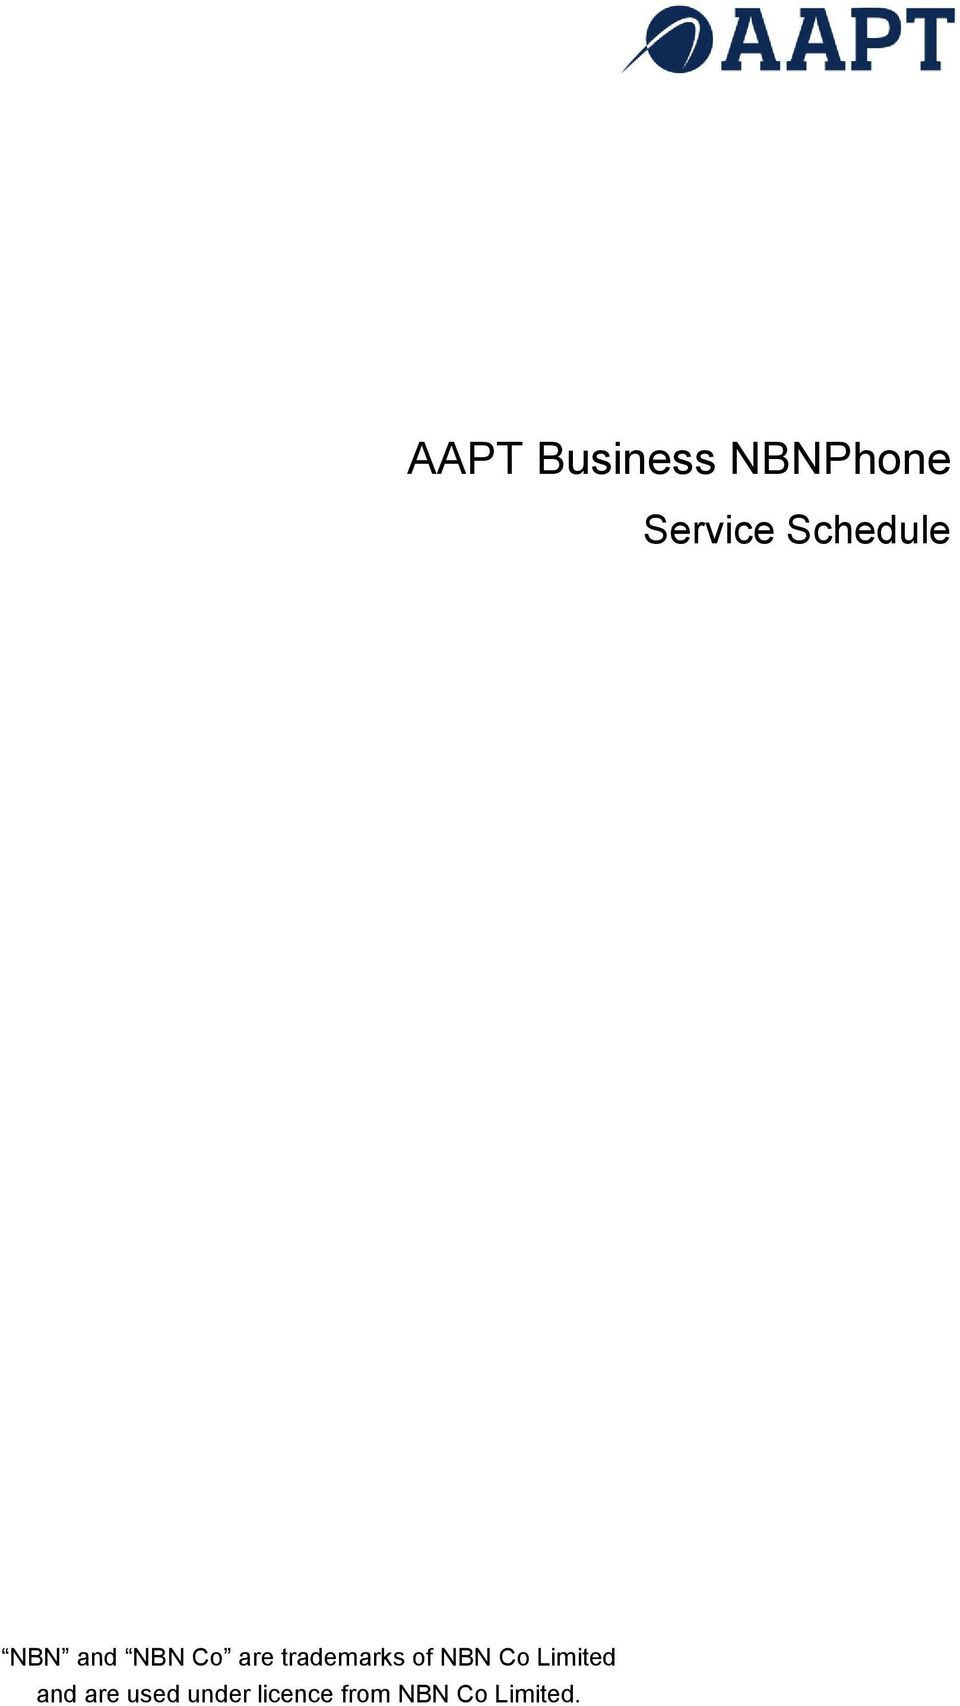 trademarks of NBN Co Limited and